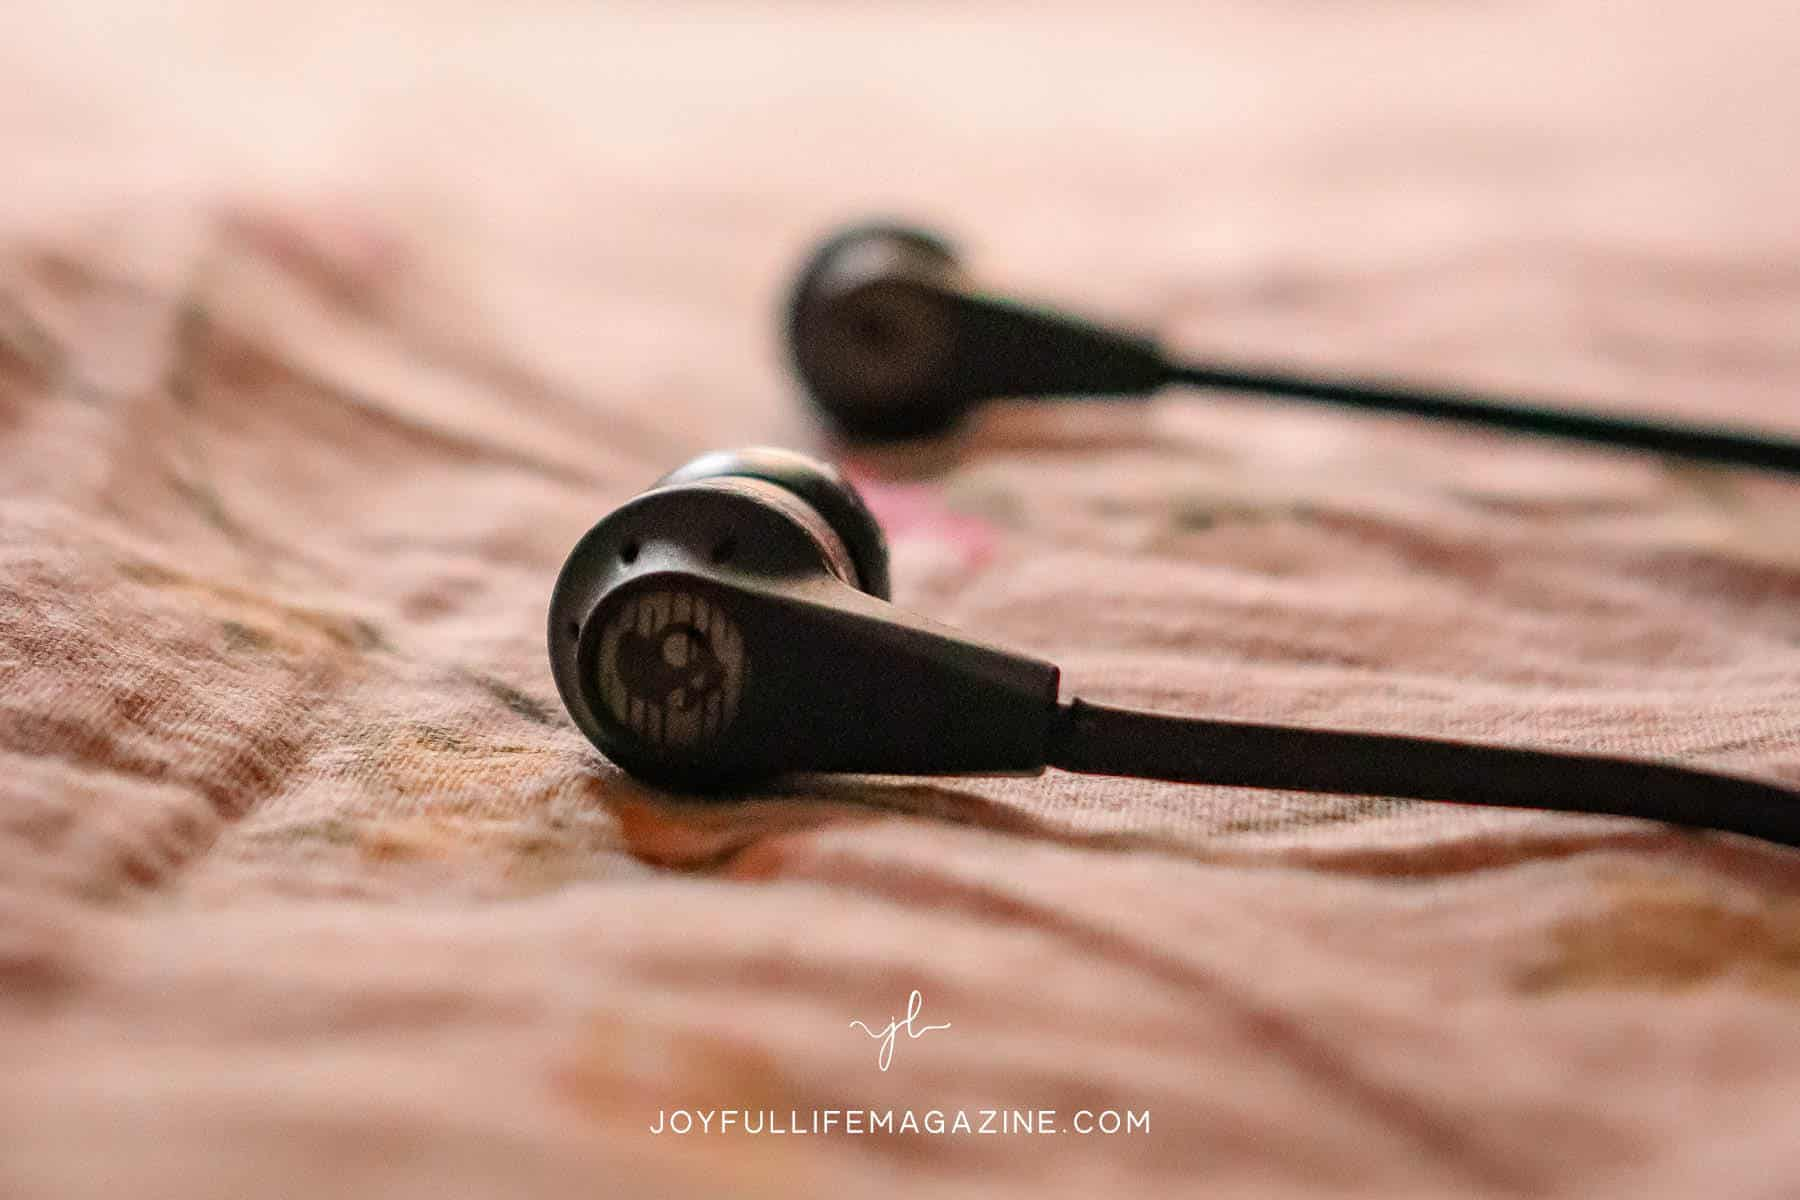 a pair of headphones | Does secular music have a place in Christian homes?